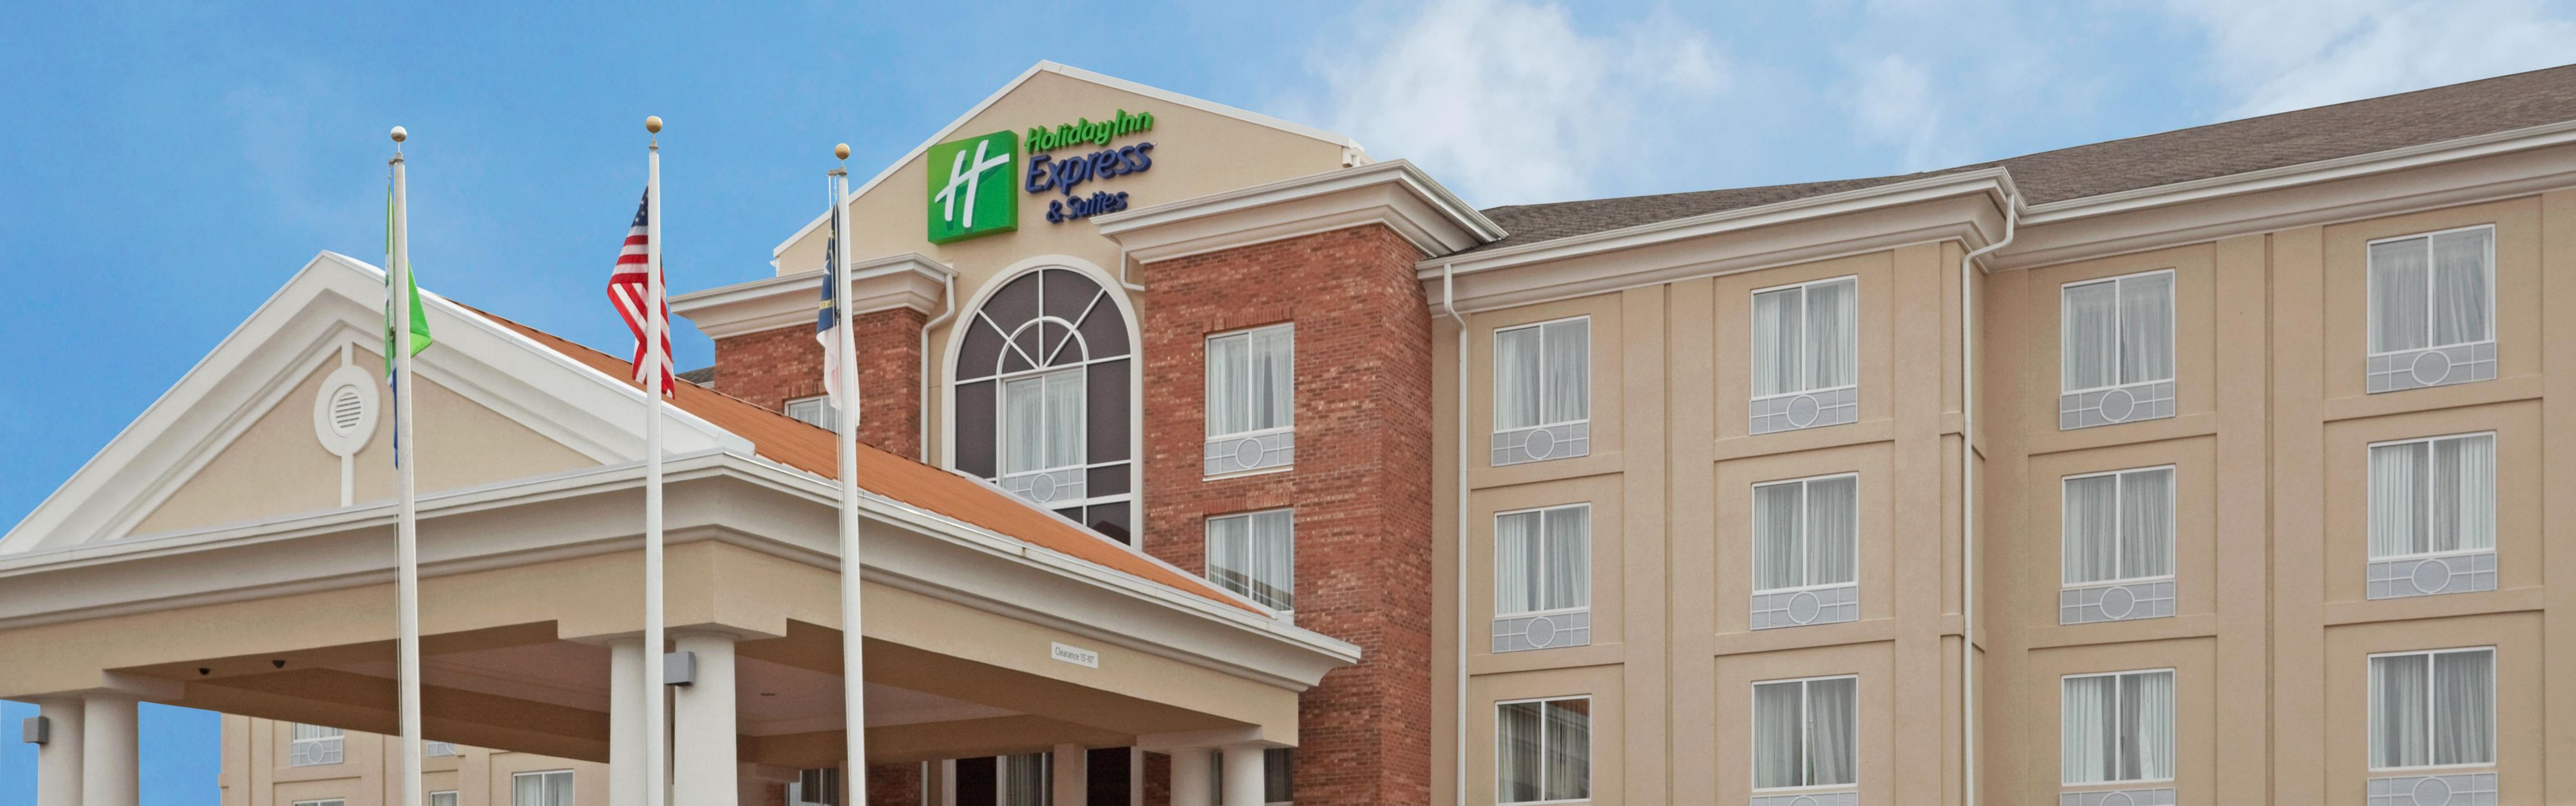 Holiday Inn Express & Suites Greensboro - Airport Area image 0